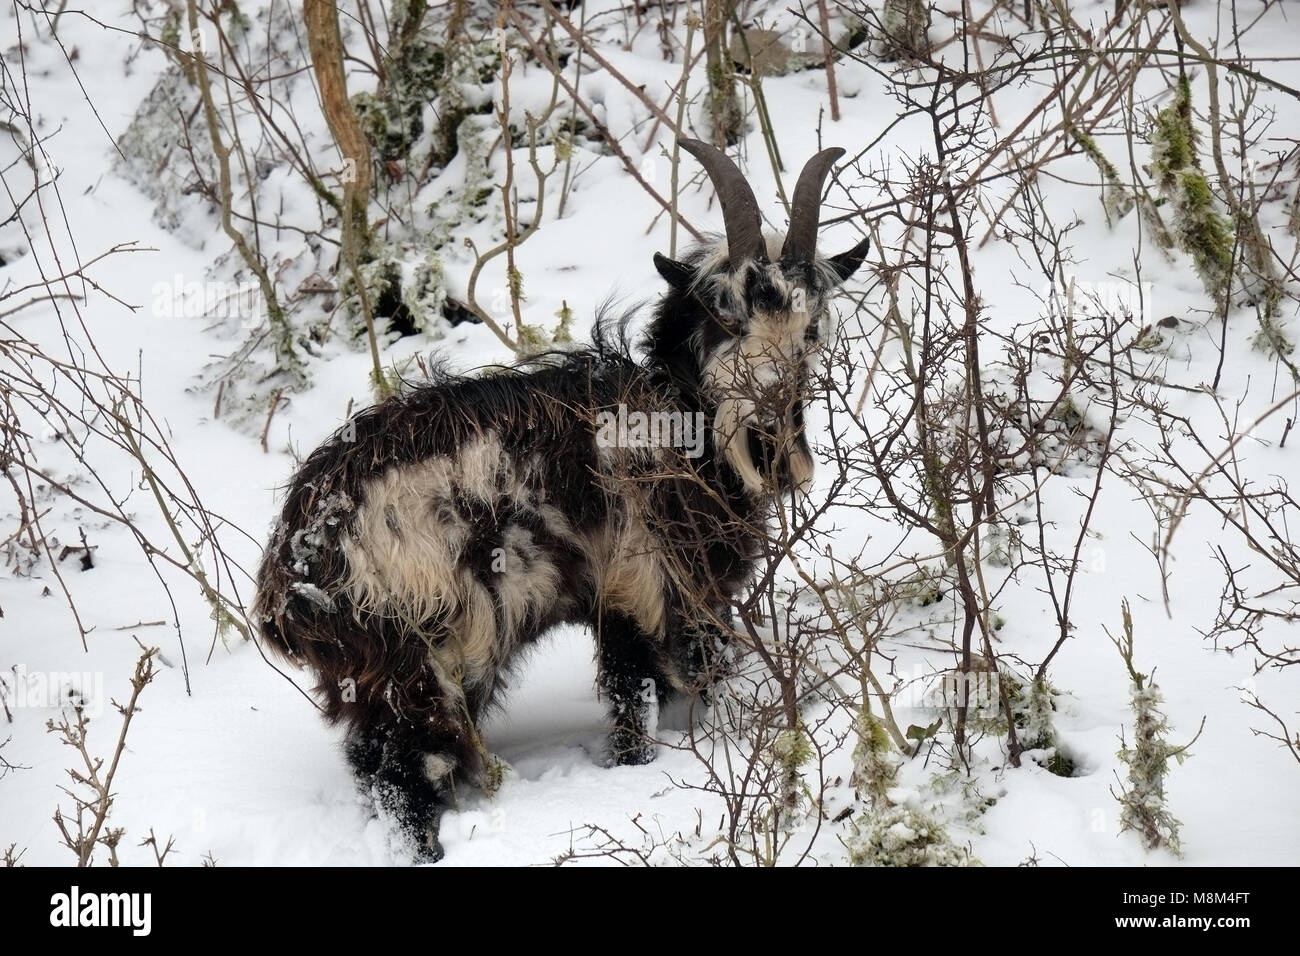 Cheddar Gorge, UK. 18th March 2018 - Feral Goat in the snows of Cheddar Gorge. Credit: Timothy Large/Alamy Live - Stock Image